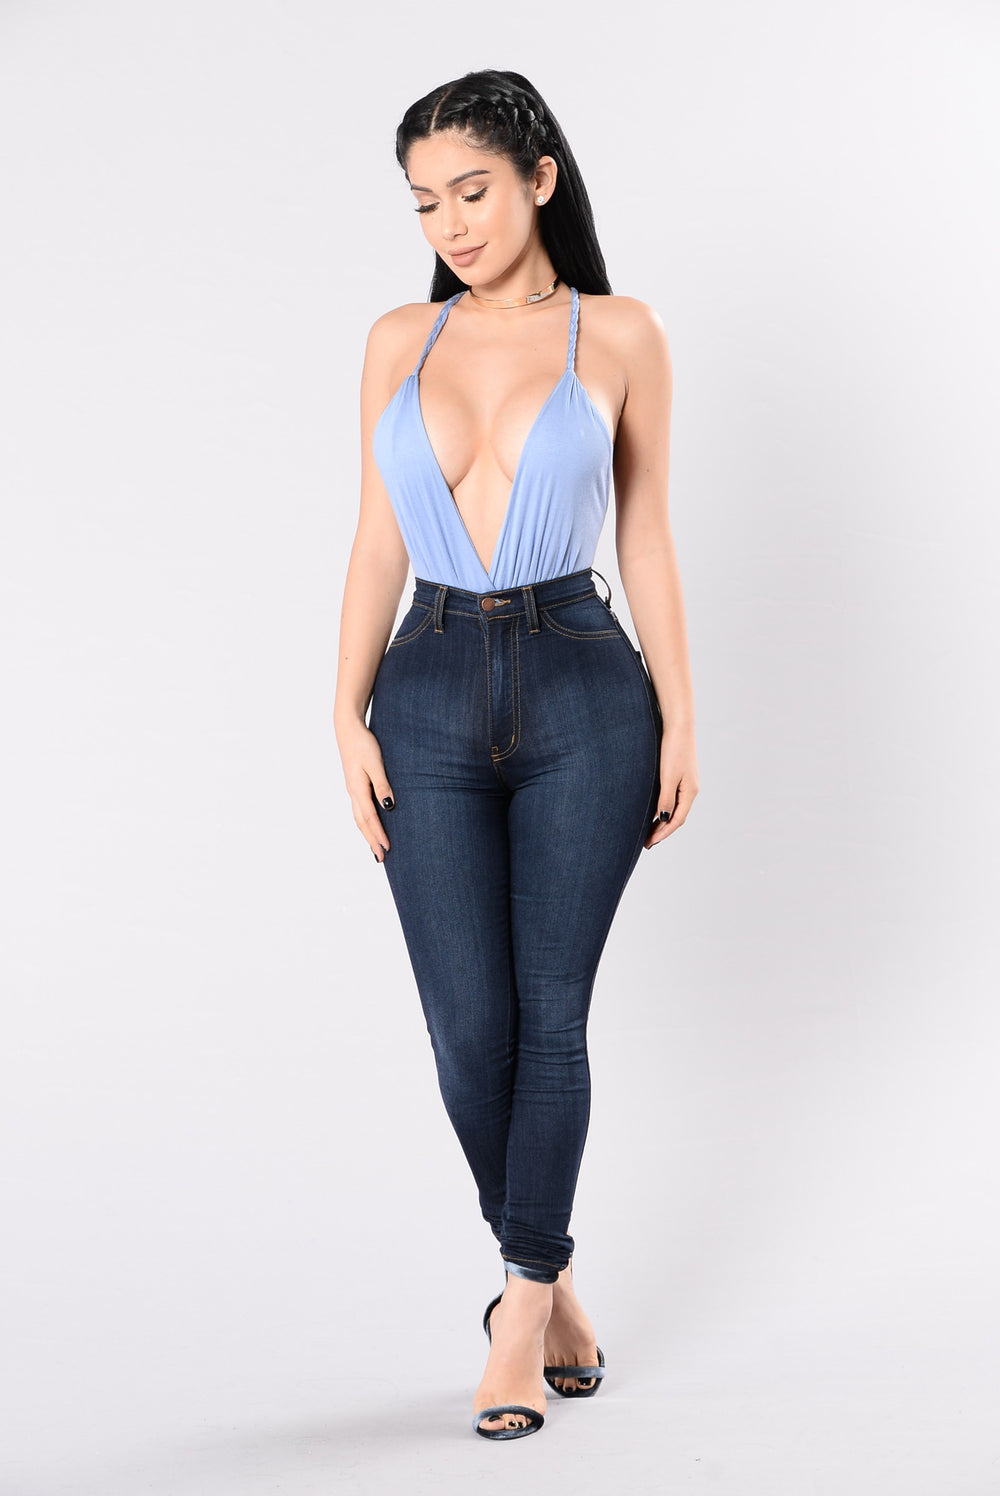 I'll Be Your Escape Bodysuit - Dusty Blue